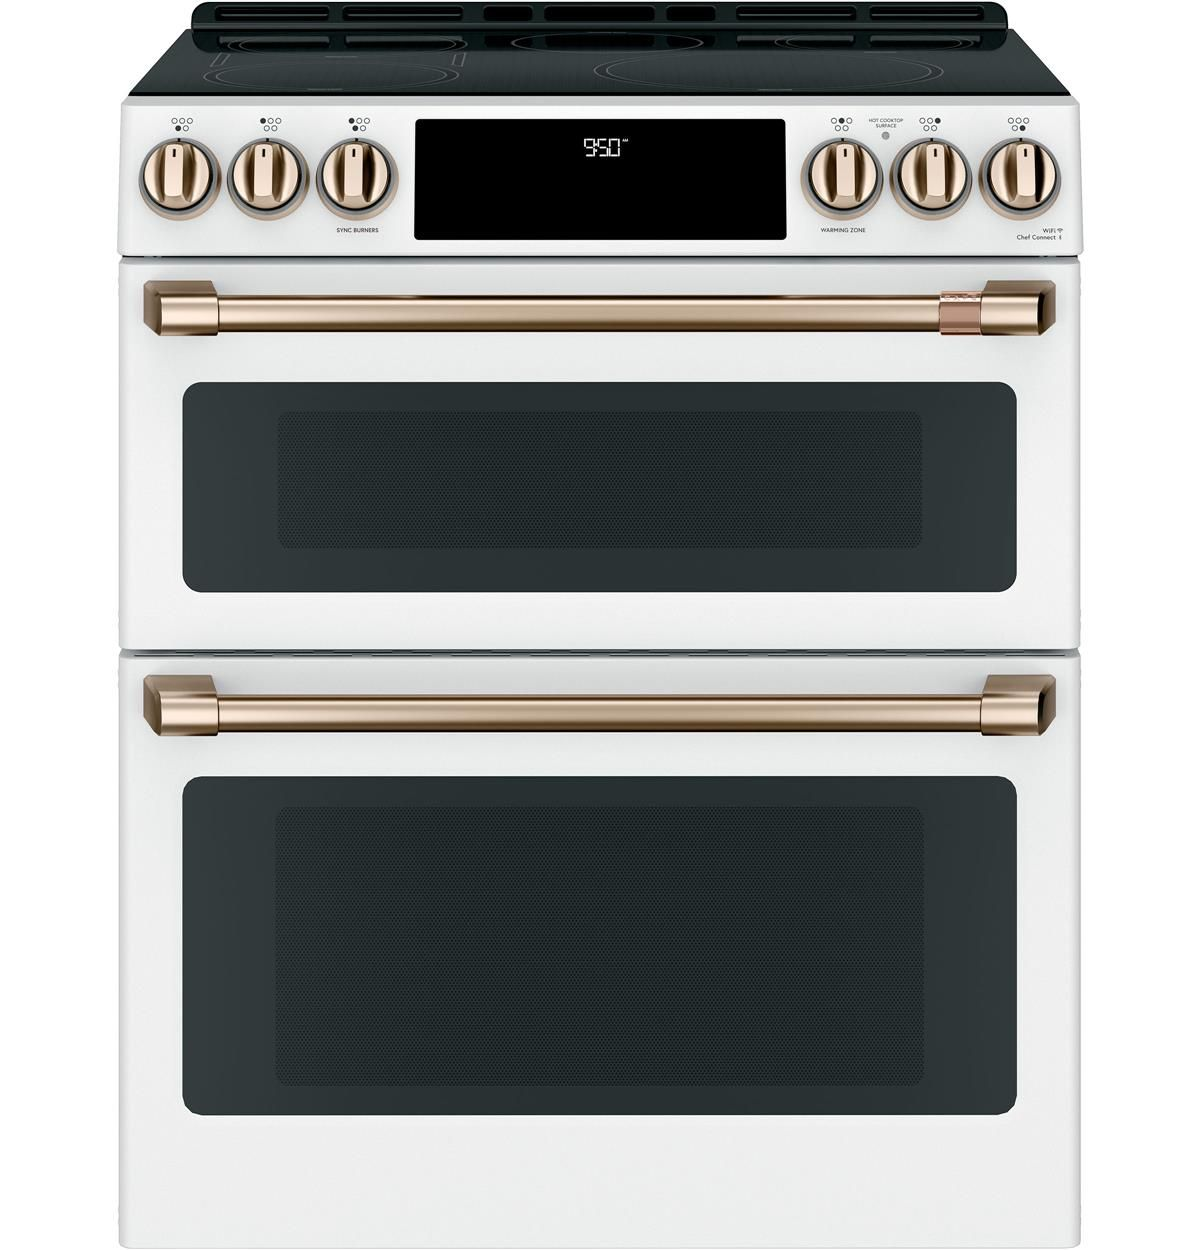 Ranges Customizable Cooking Appliances For Your Kitchen Cafe Gas Range Double Oven Double Oven Electric Range Double Oven Range